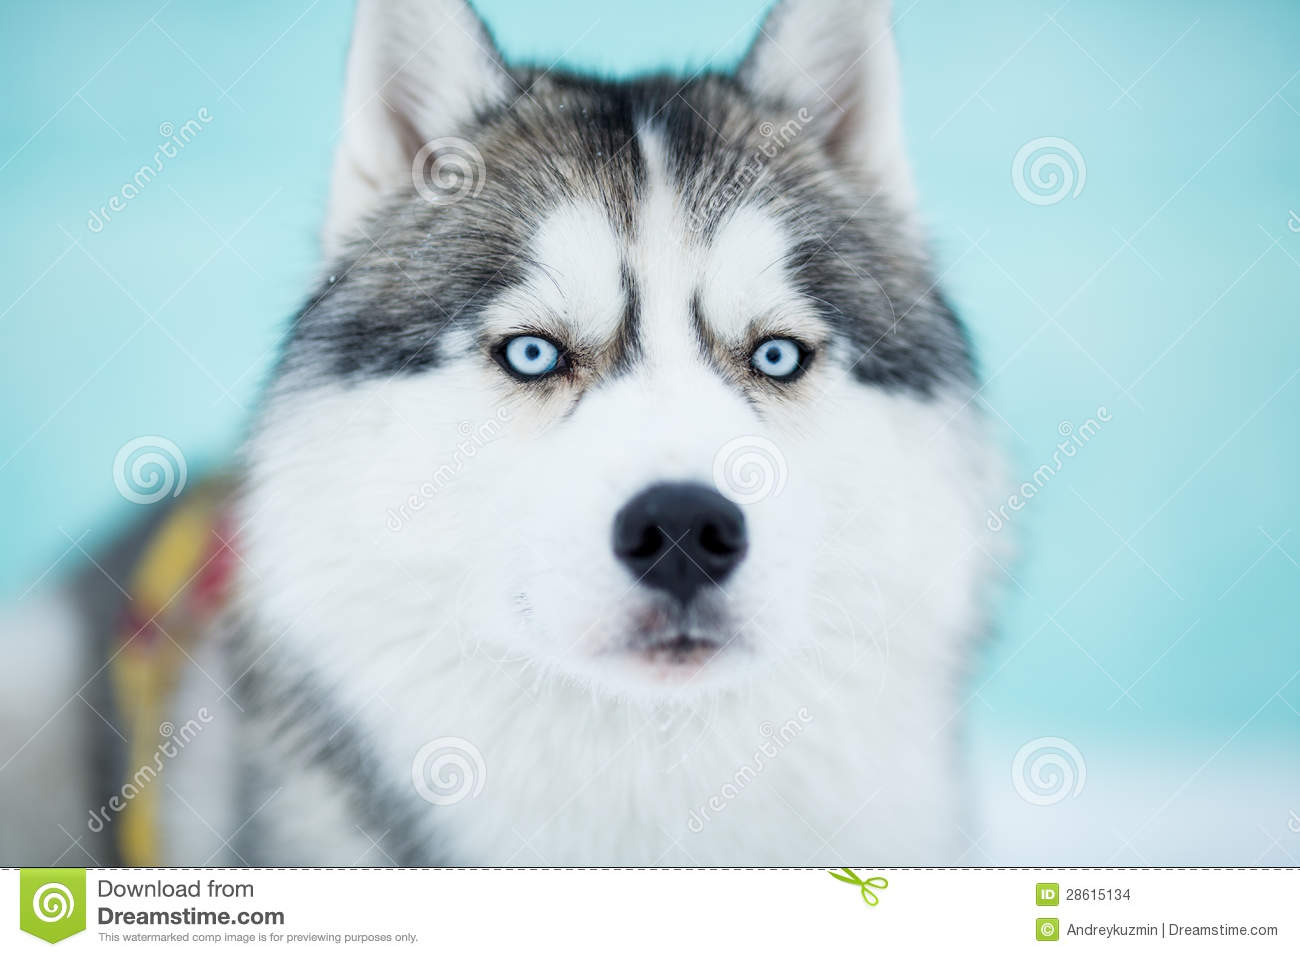 Siberian Husky Sled Dog Closeup Stock Images - Image: 28615134